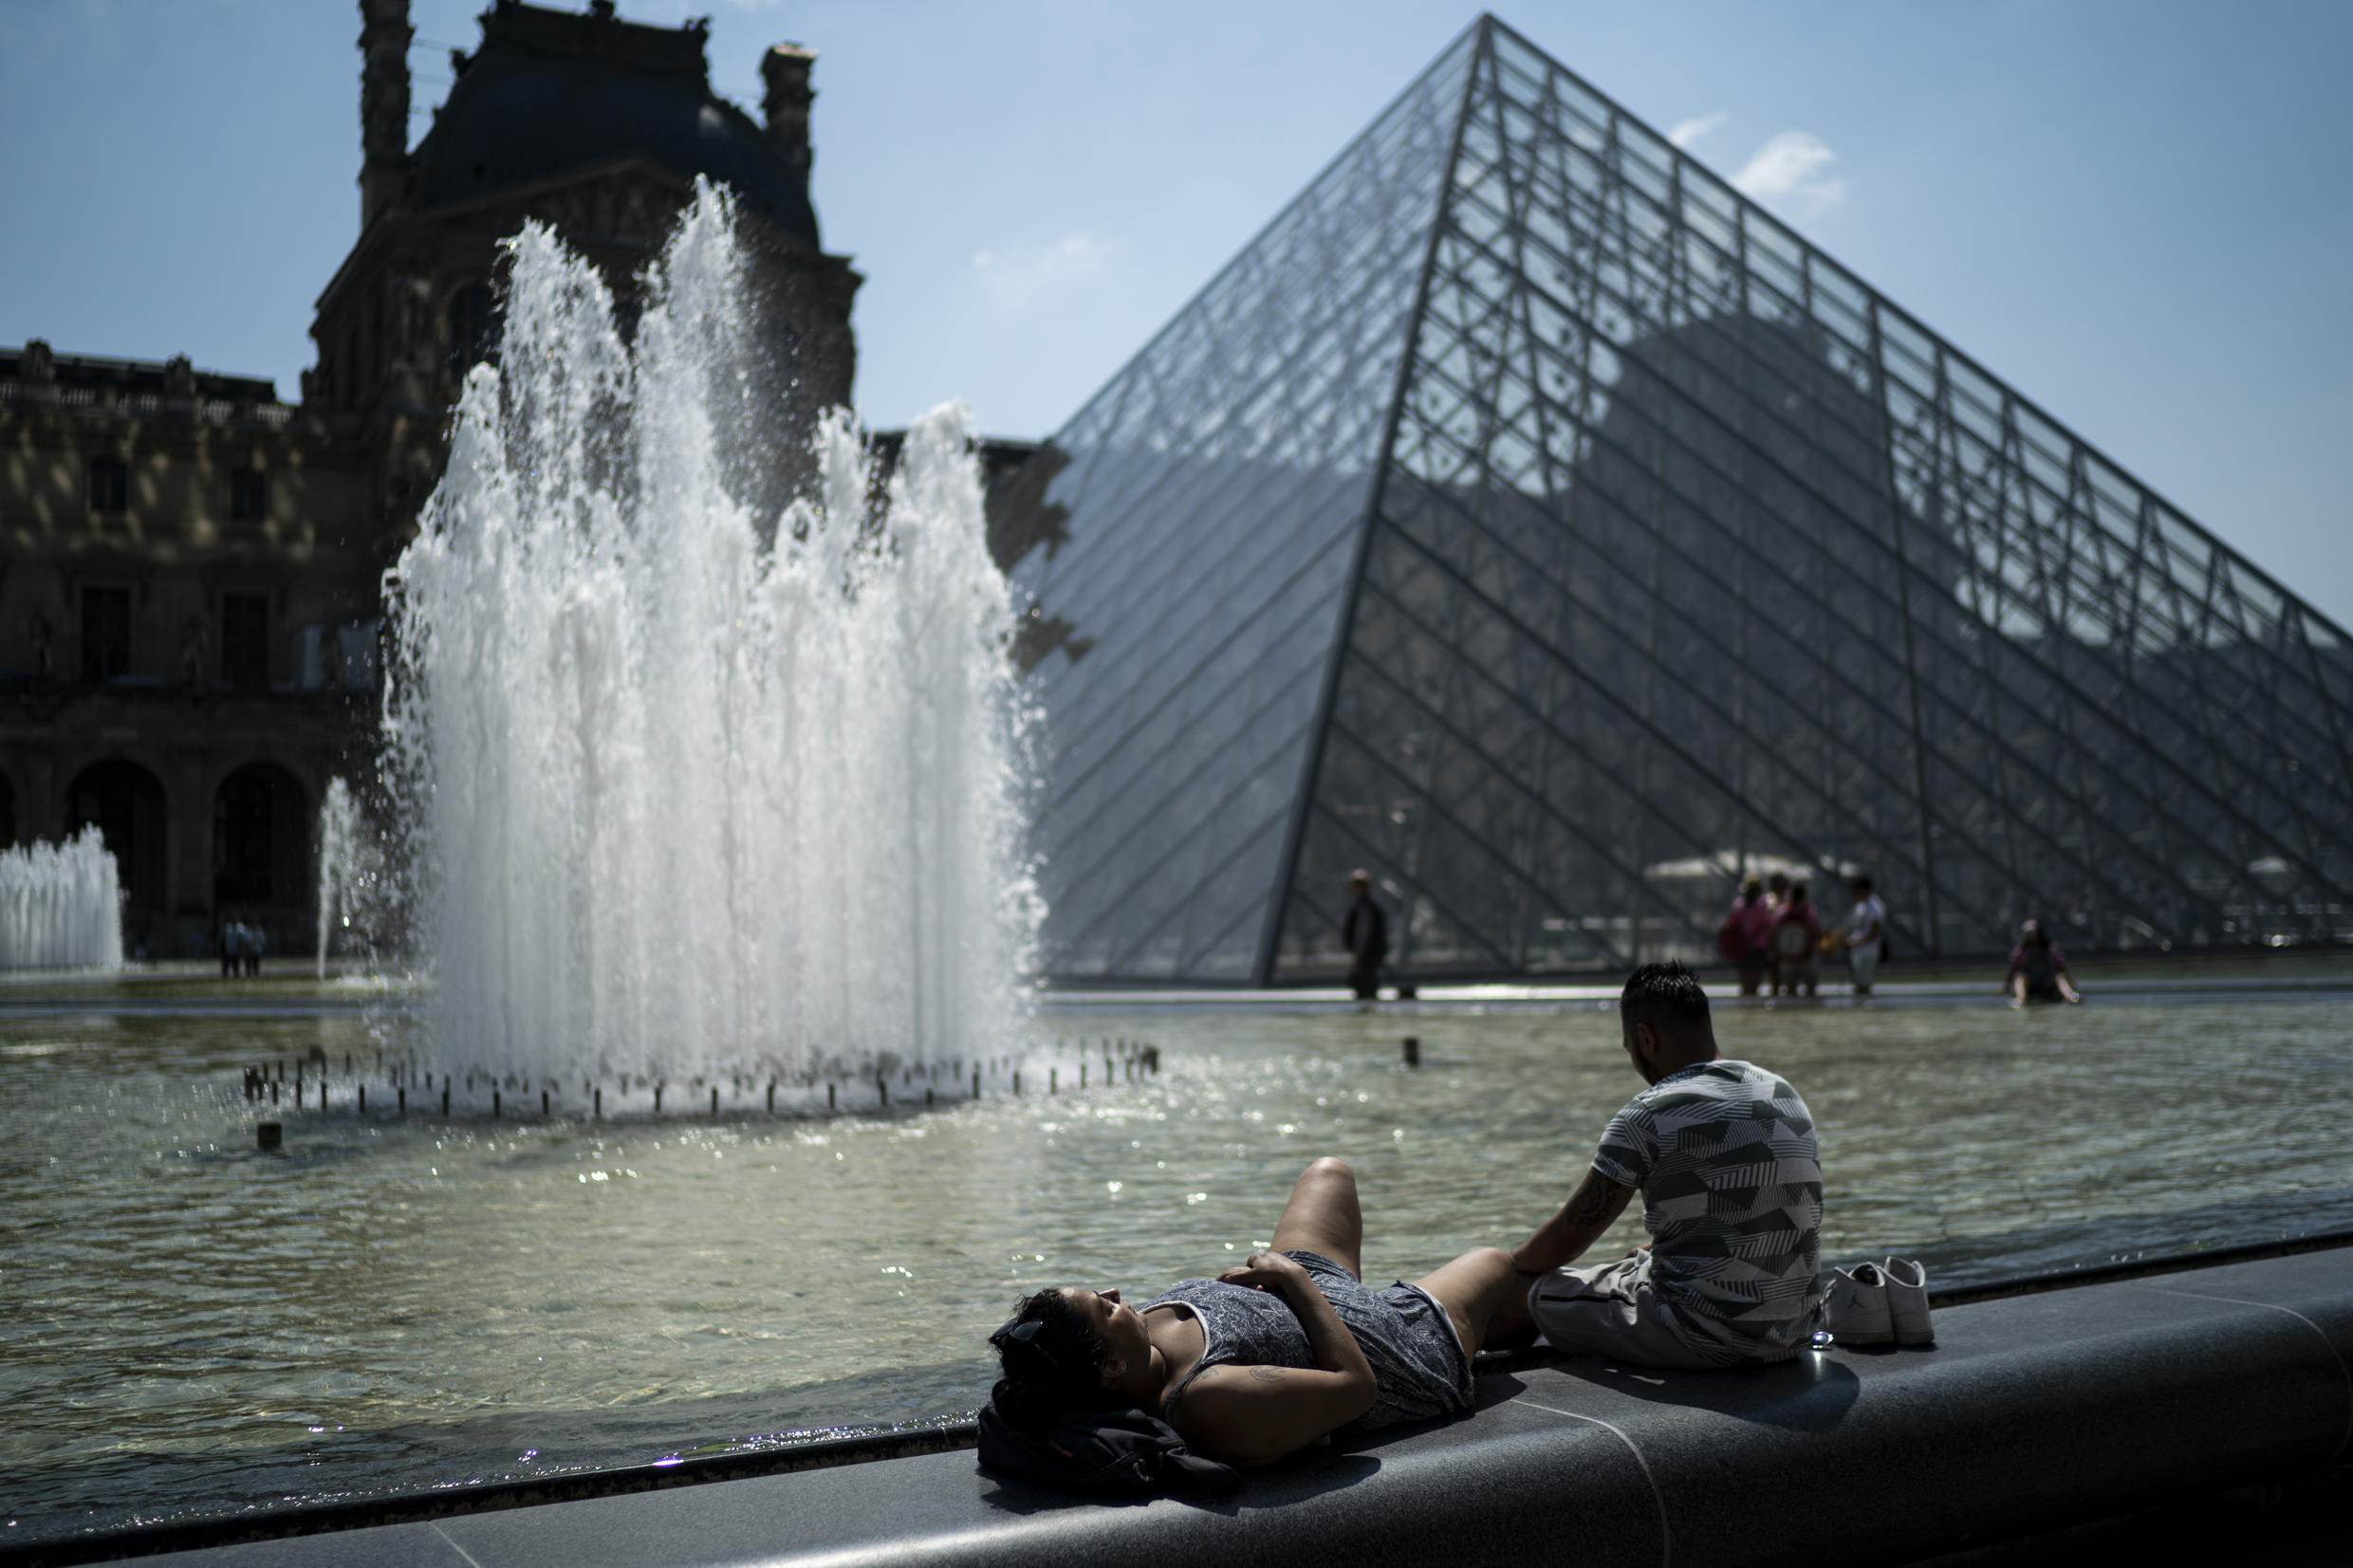 Visitors relax at the entrance of the Louvre museum in Paris, where temperatures were expected to reach 32 degrees Celsius on Monday.